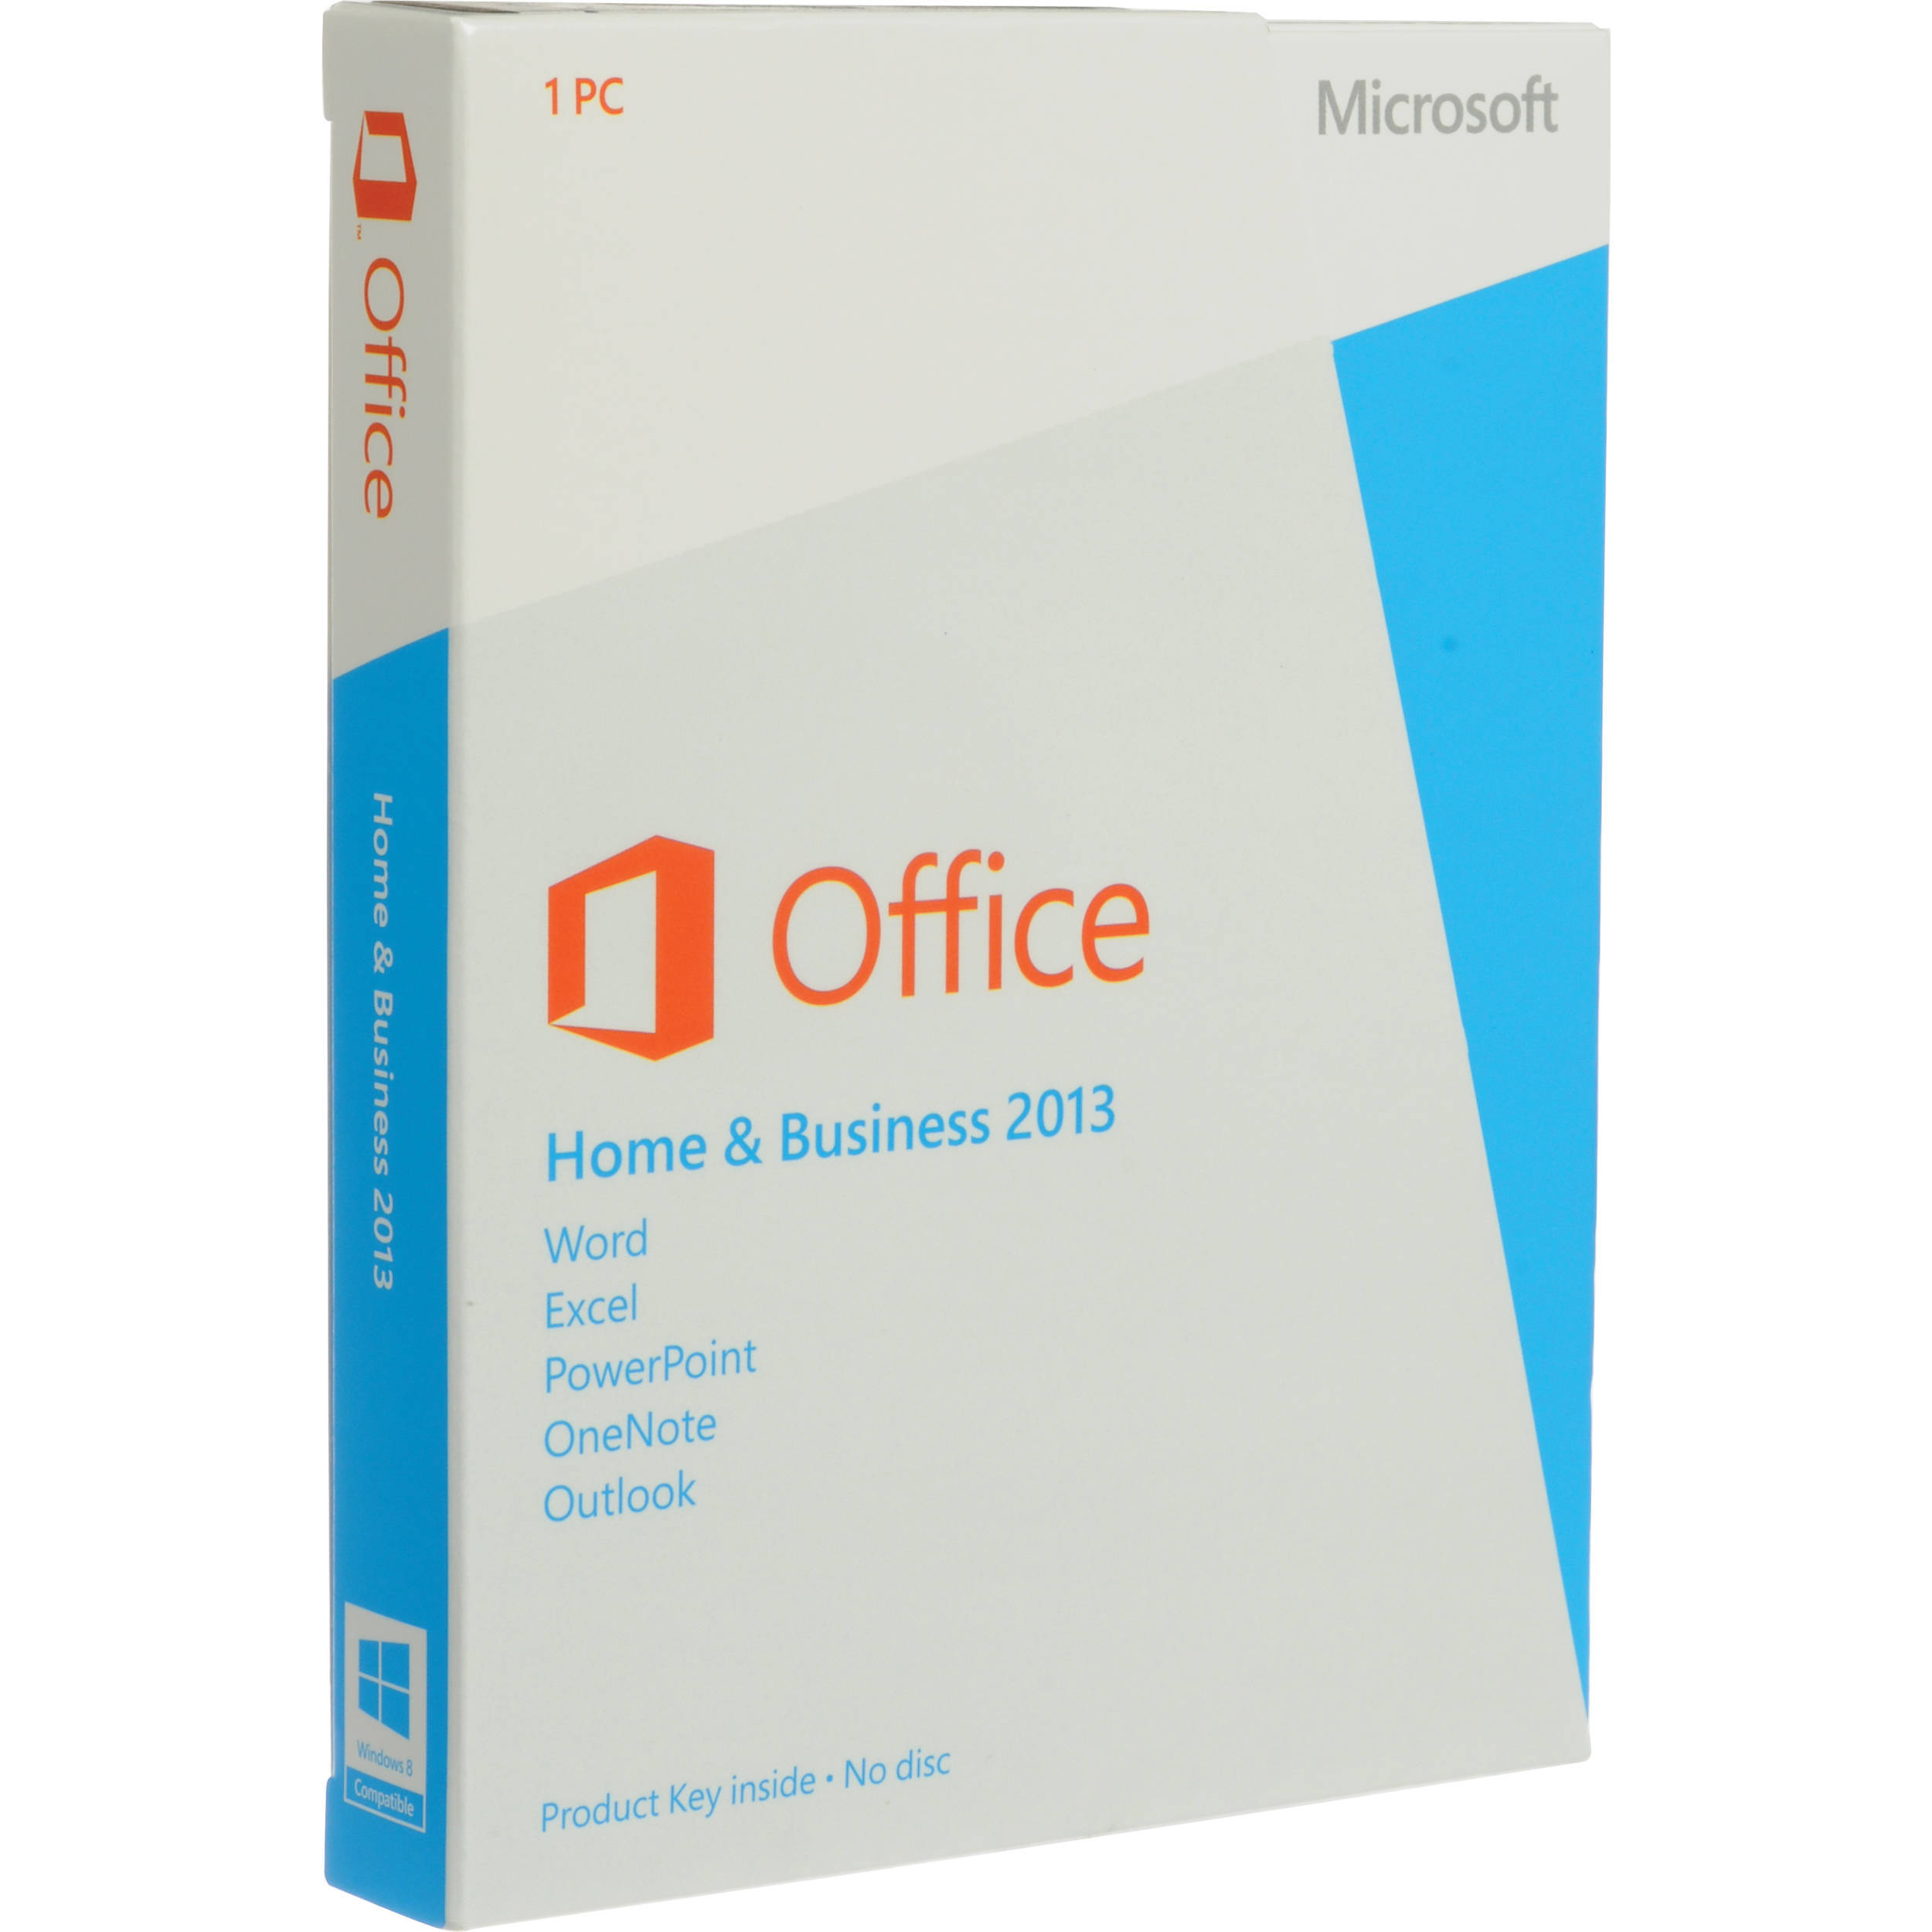 Microsoft office home business 2013 for windows aaa 02675 - Windows office home and business 2013 ...